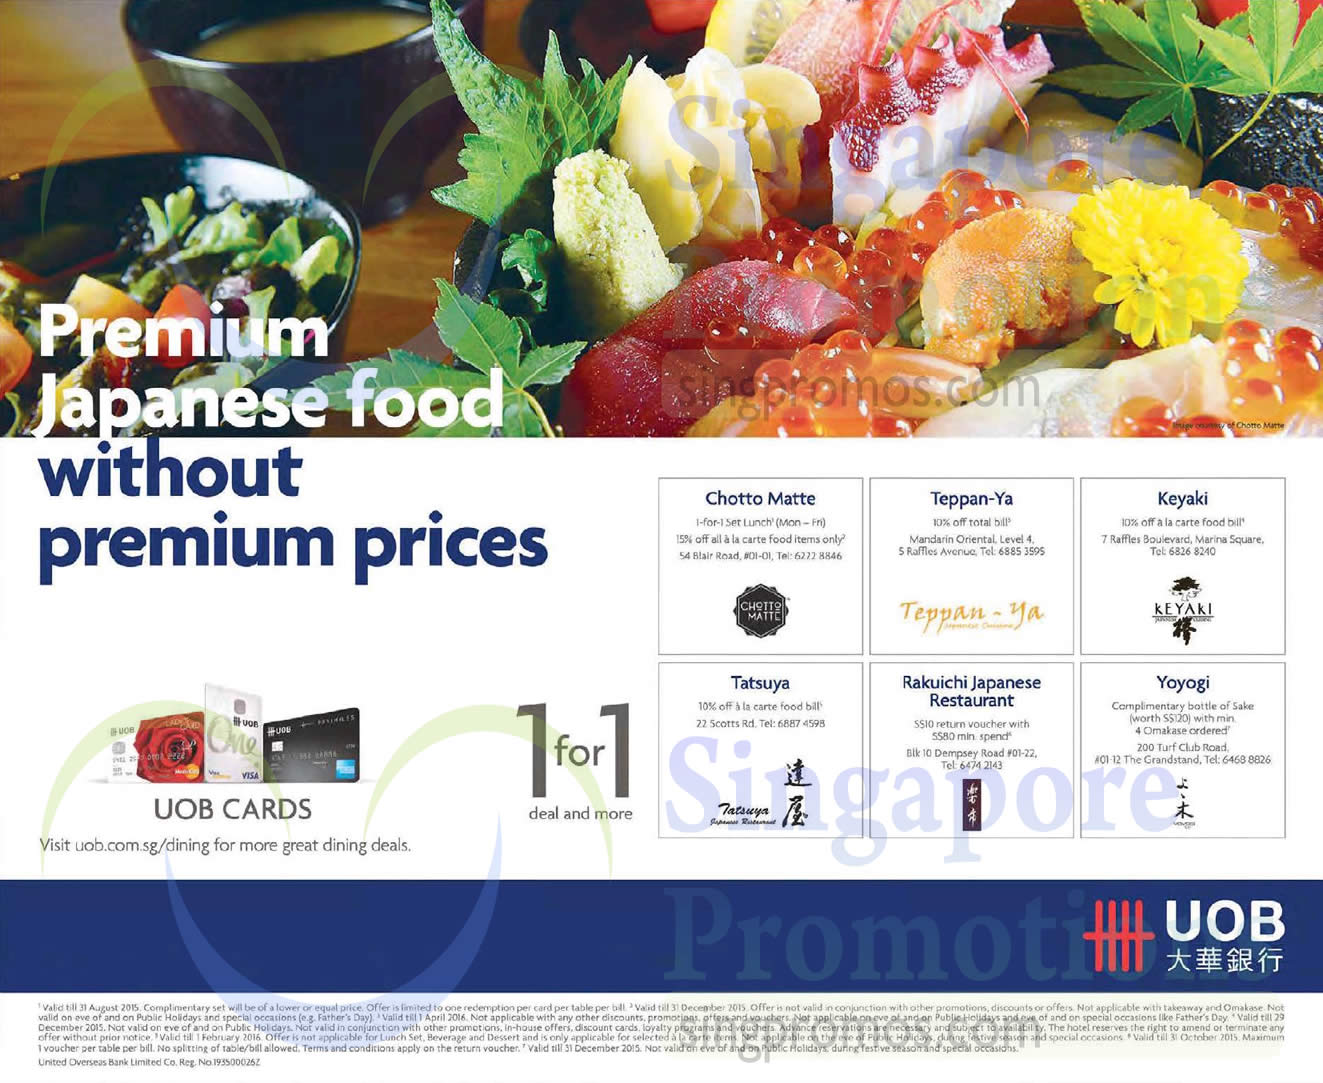 uob dining 28 may 2015 uob japanese dining offers 29 may 2015. Black Bedroom Furniture Sets. Home Design Ideas